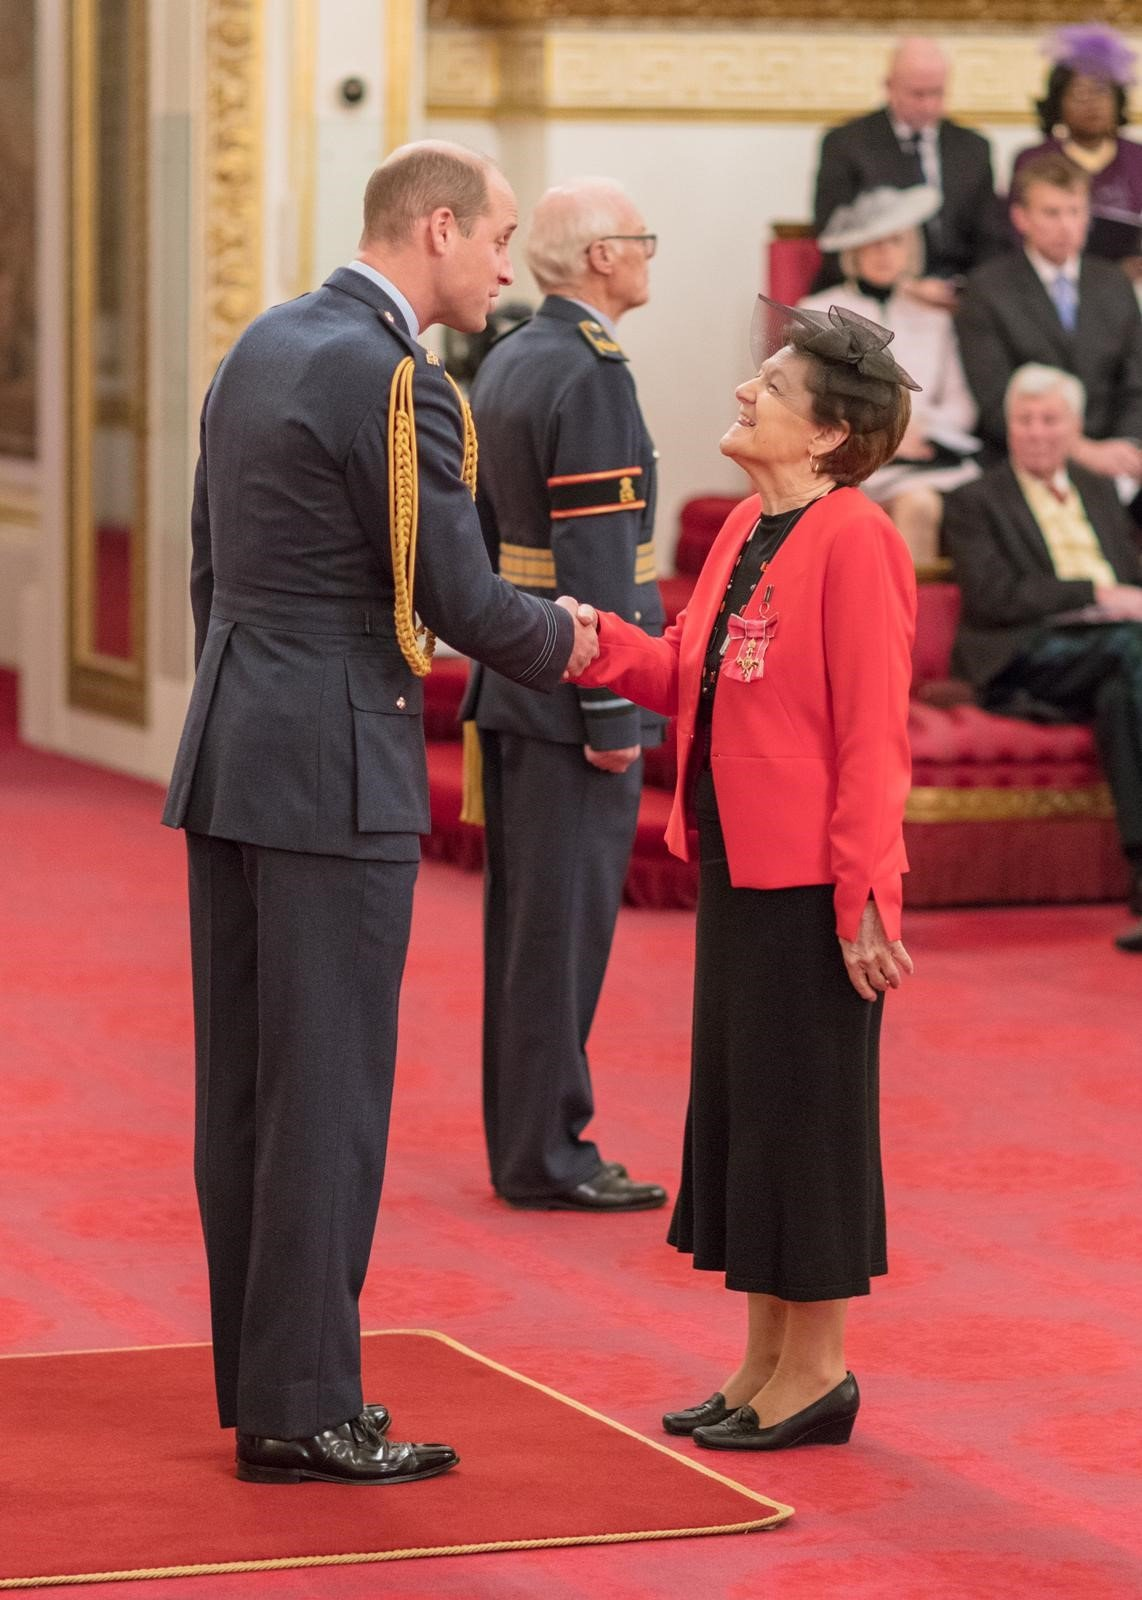 anne-mcewan-obe-investiture-duke-cambridge (3)